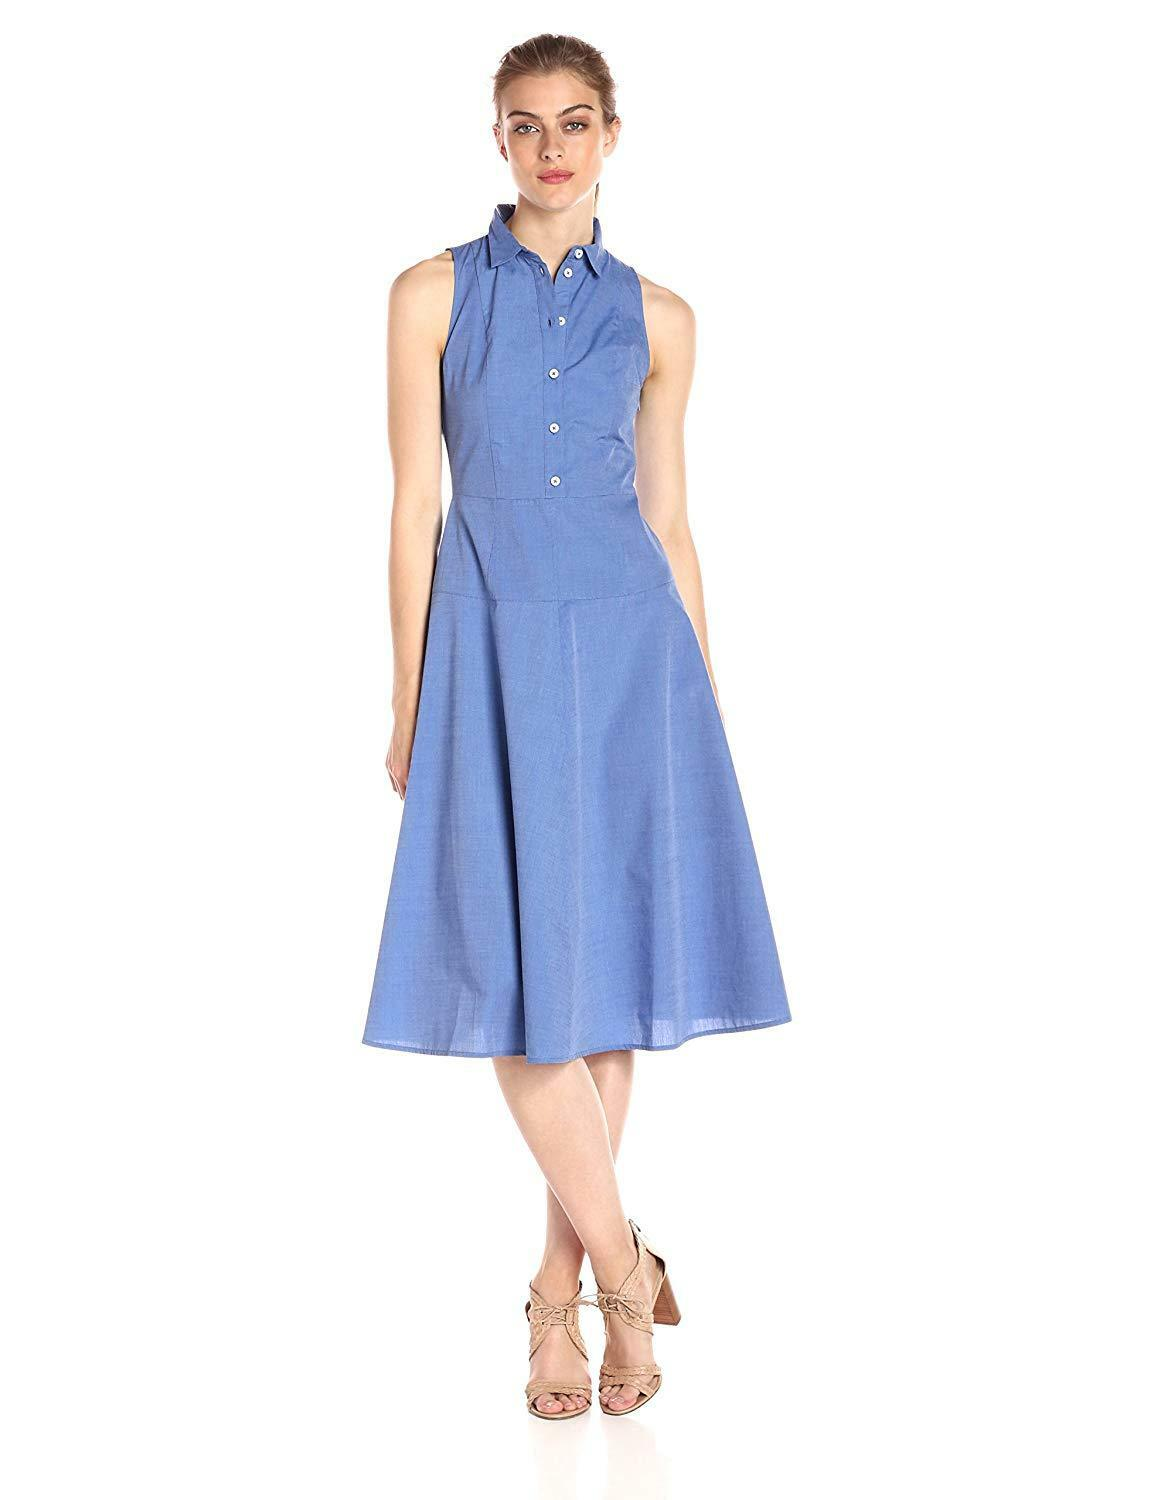 Armani Exchange damen Collarot Button up Sleveless Midi Dress,Blau,0, 2579-3